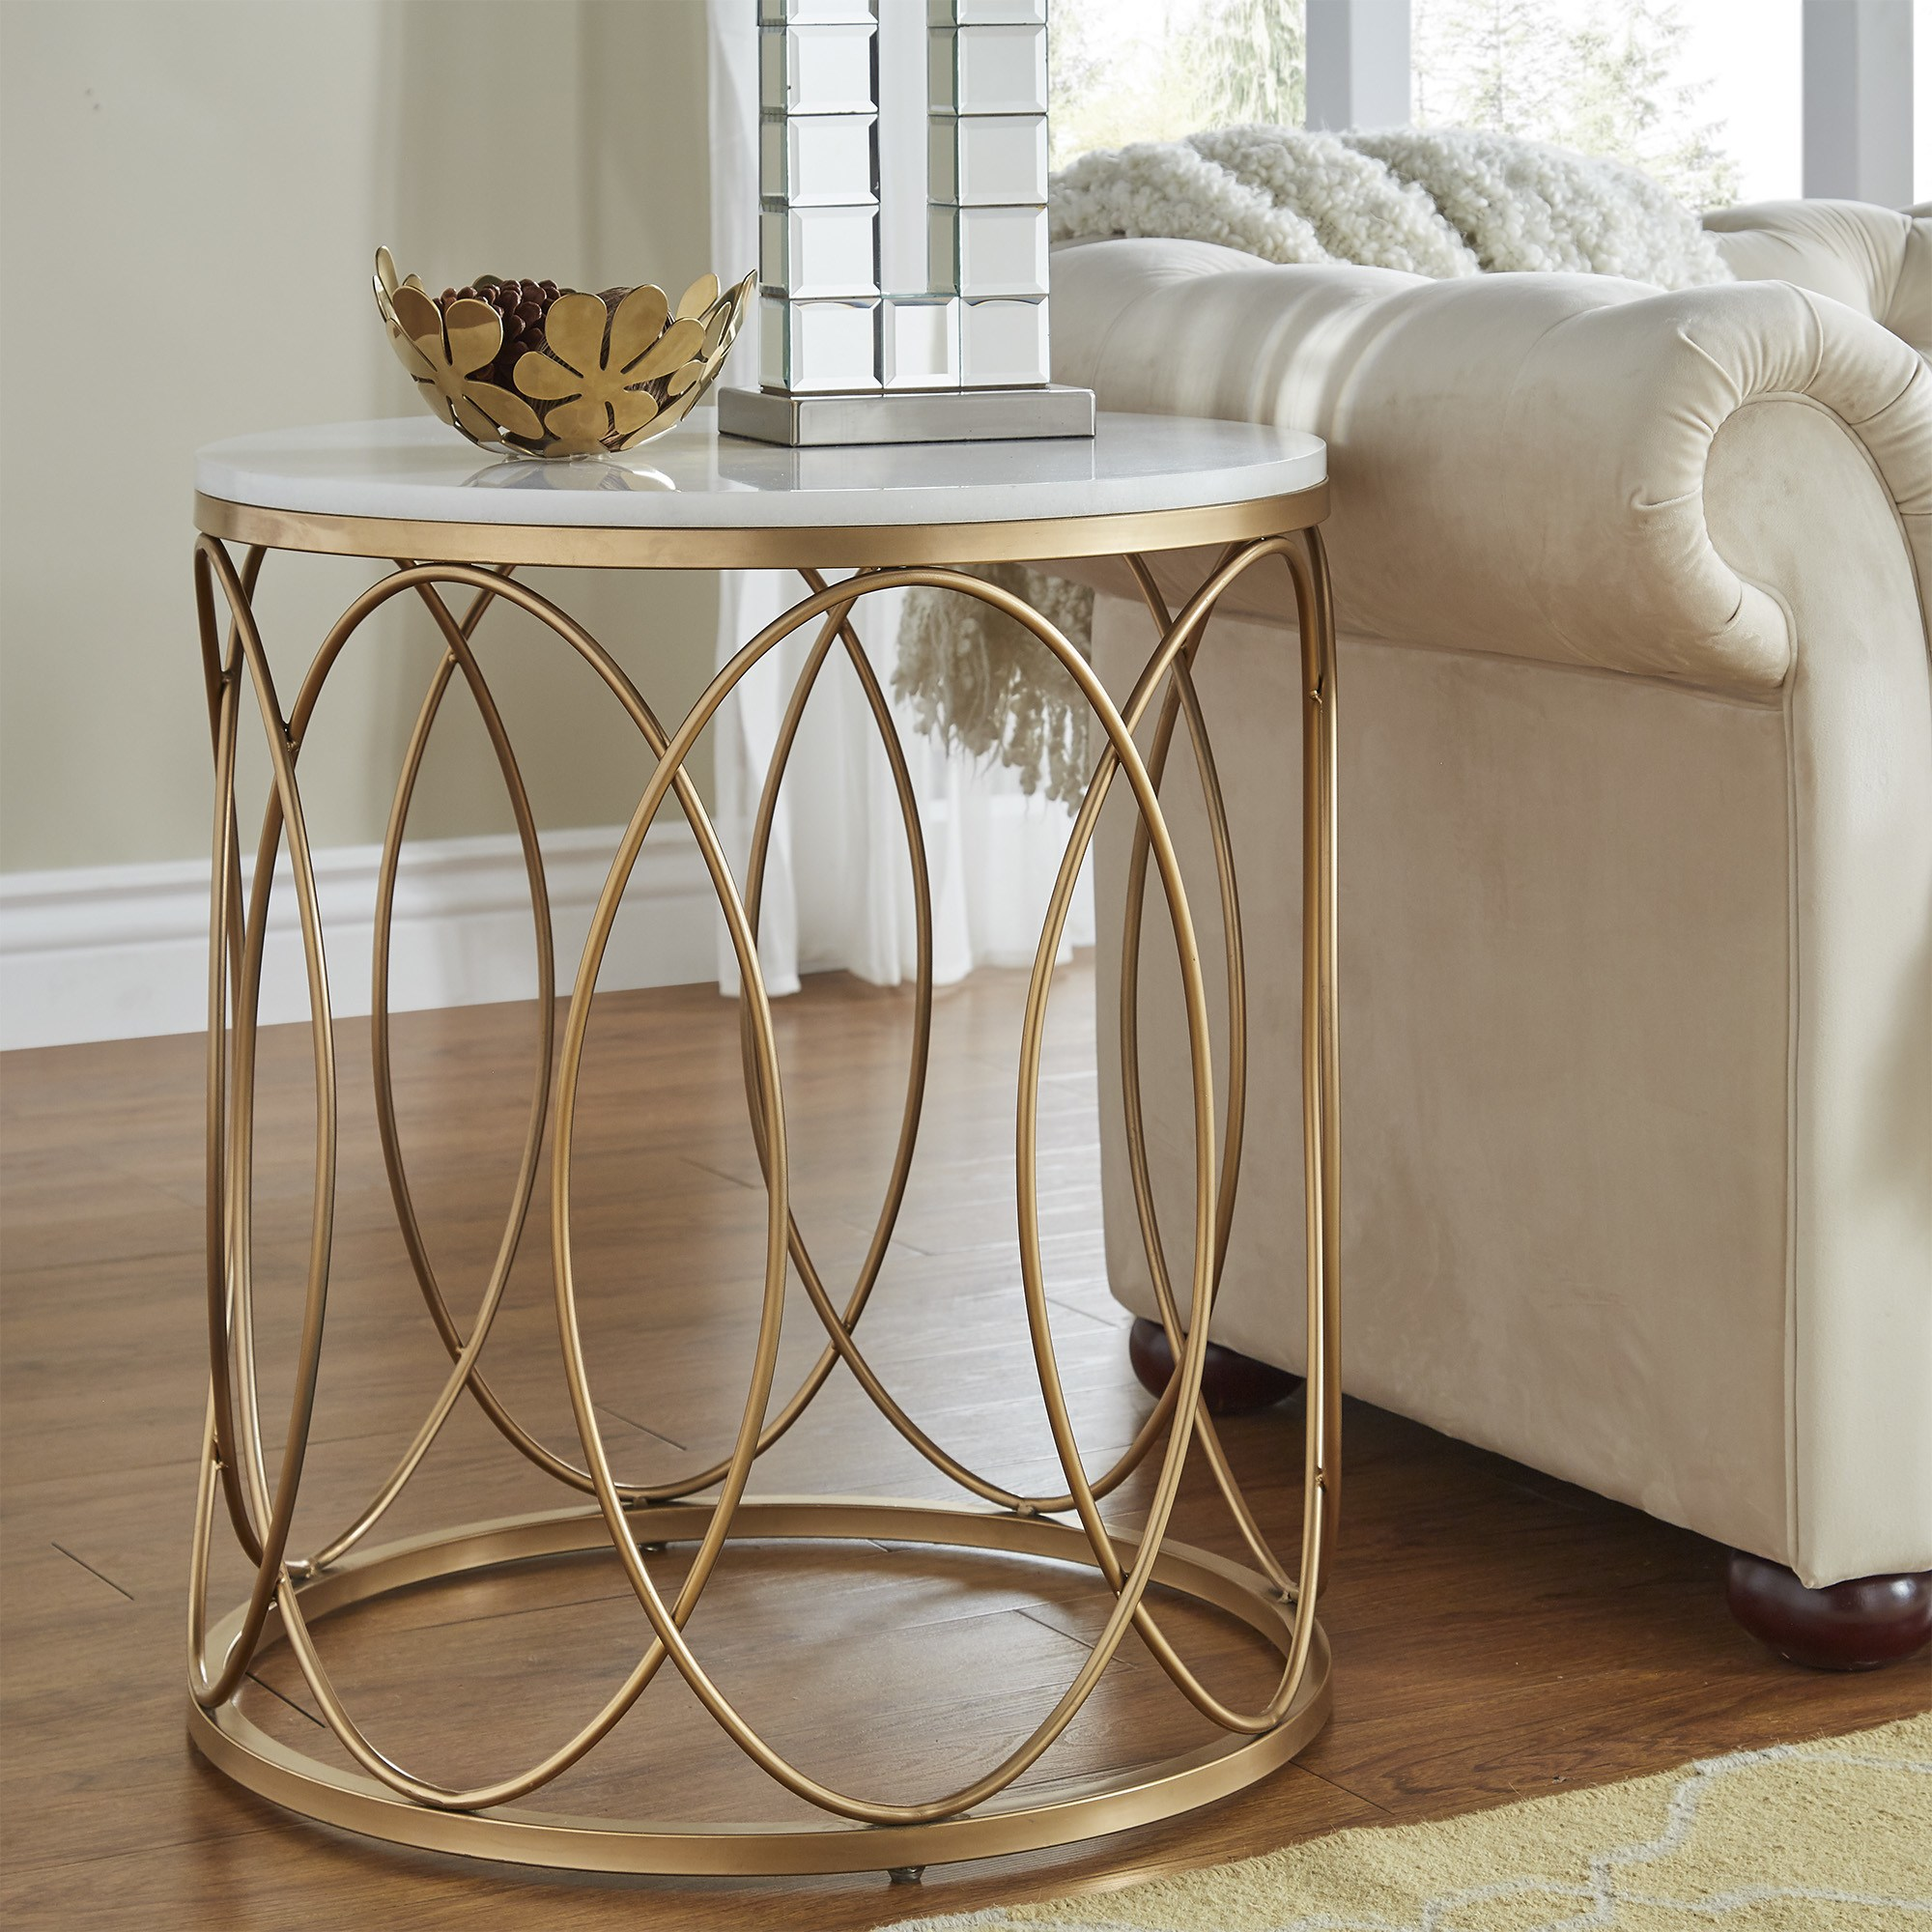 lynn round gold accent tables with marble tops inspire bold end table free shipping today glass bedside drawers garden stool side home goods and chairs low stools bunnings ikea